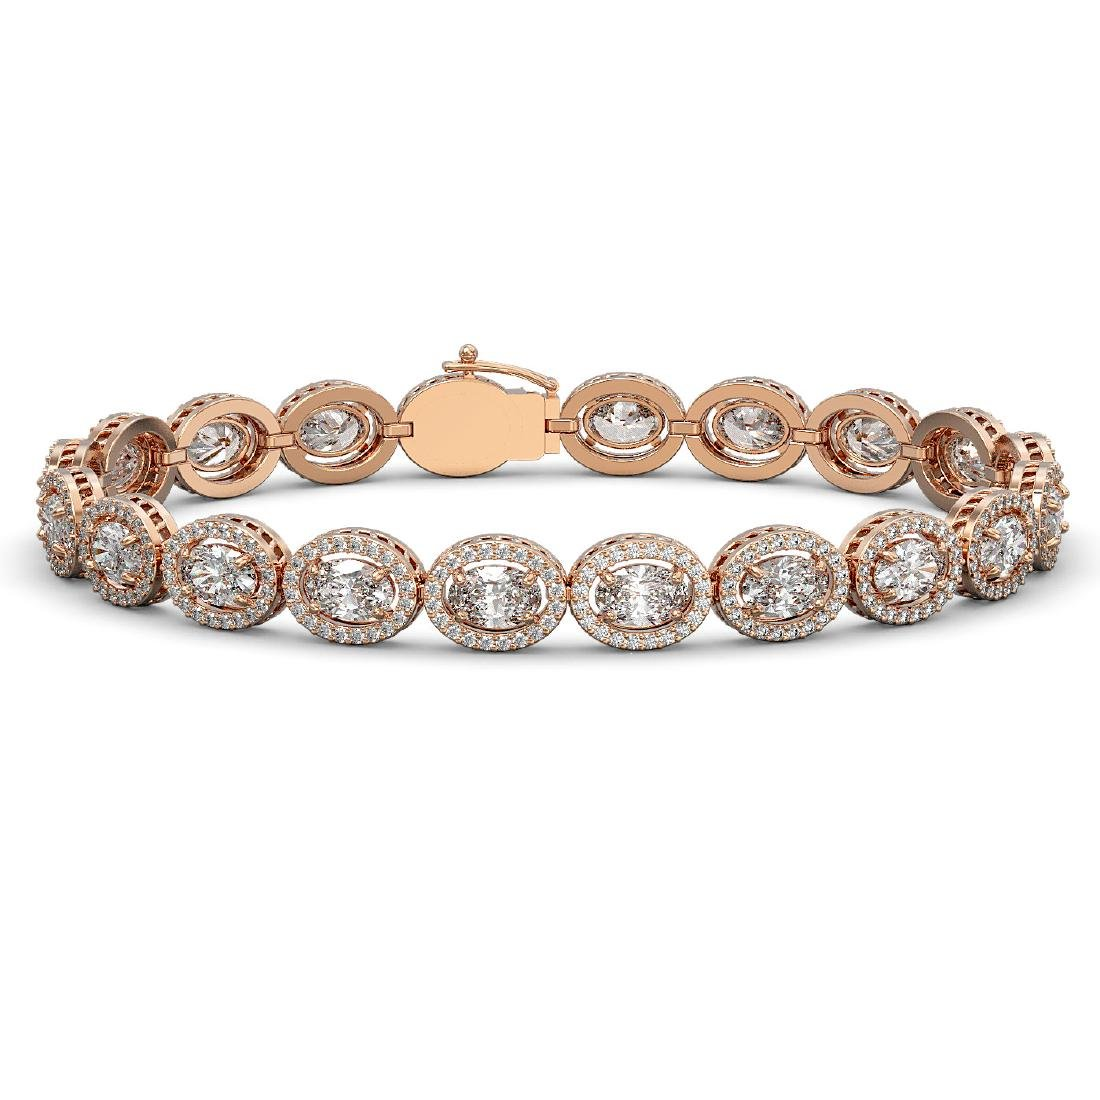 13.25 CTW Oval Diamond Designer Bracelet 18K Rose Gold